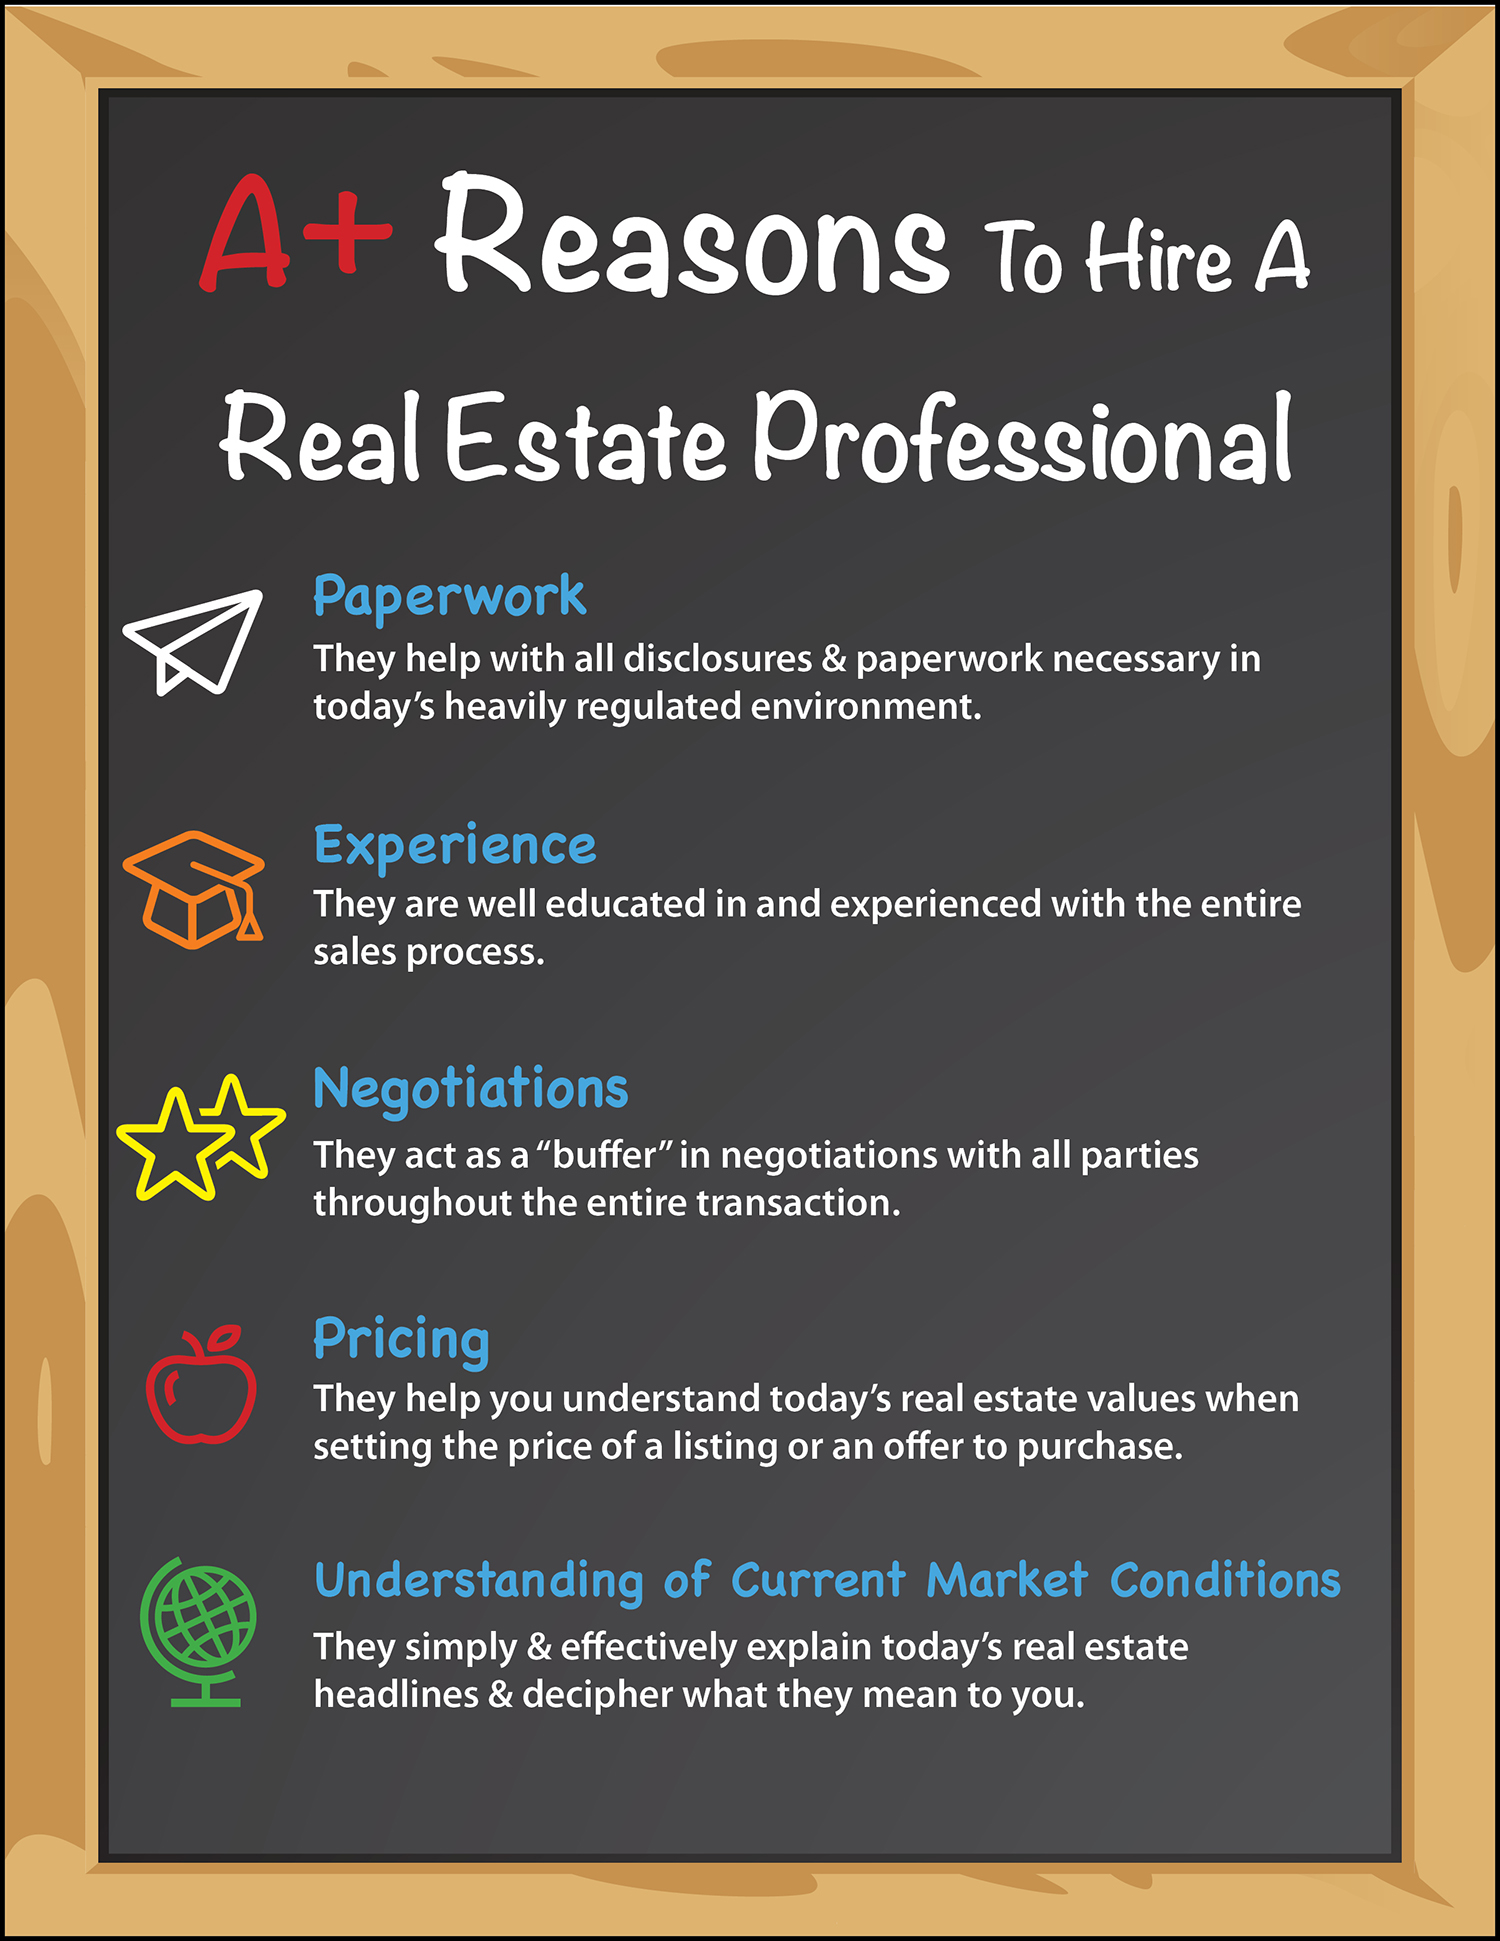 A+ Reasons to Hire a Real Estate Pro [INFOGRAPHIC] | Bridge Builders